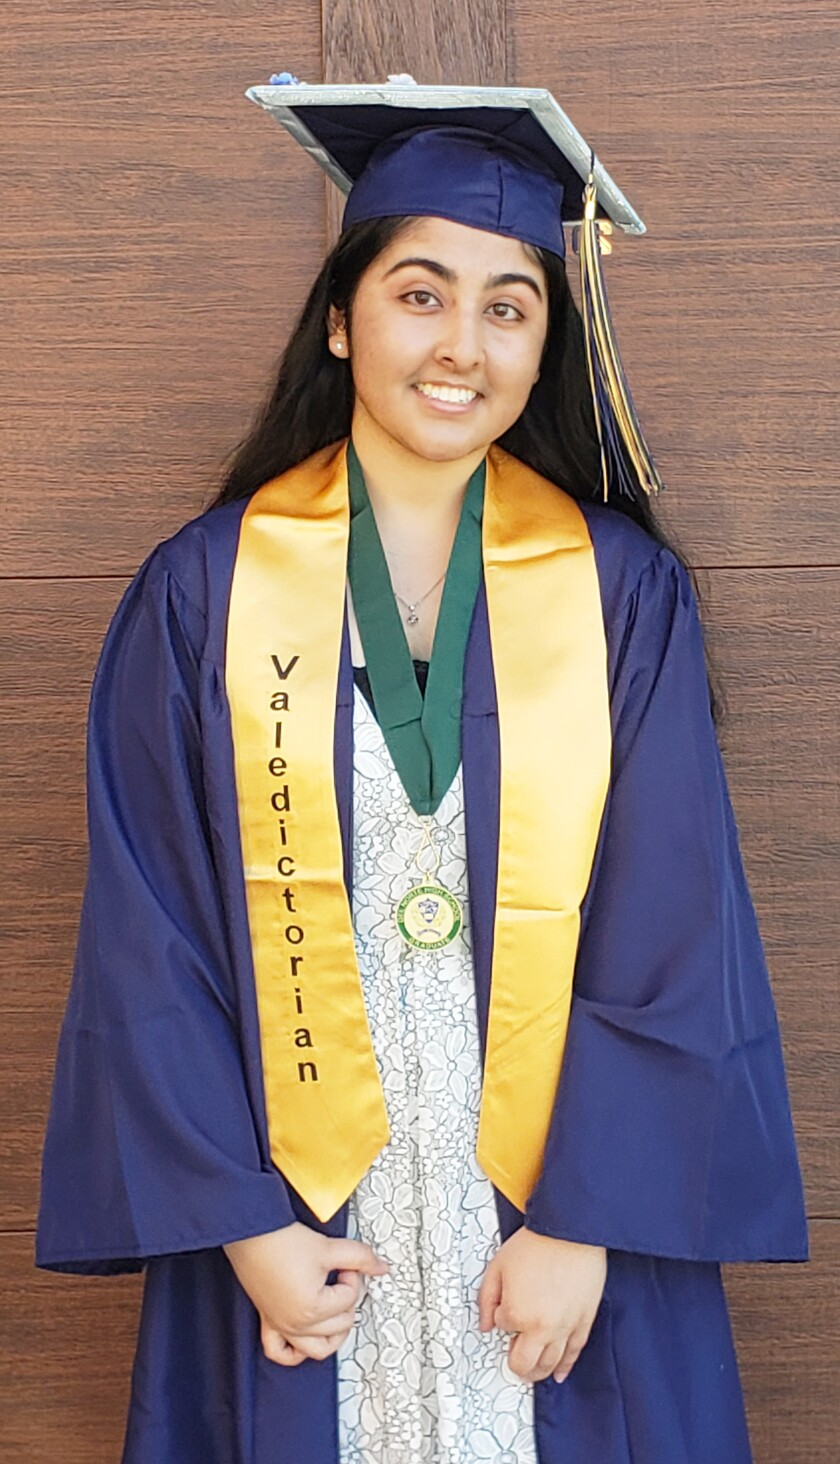 Arushi Dogra, Del Norte High 2020 valedictorian